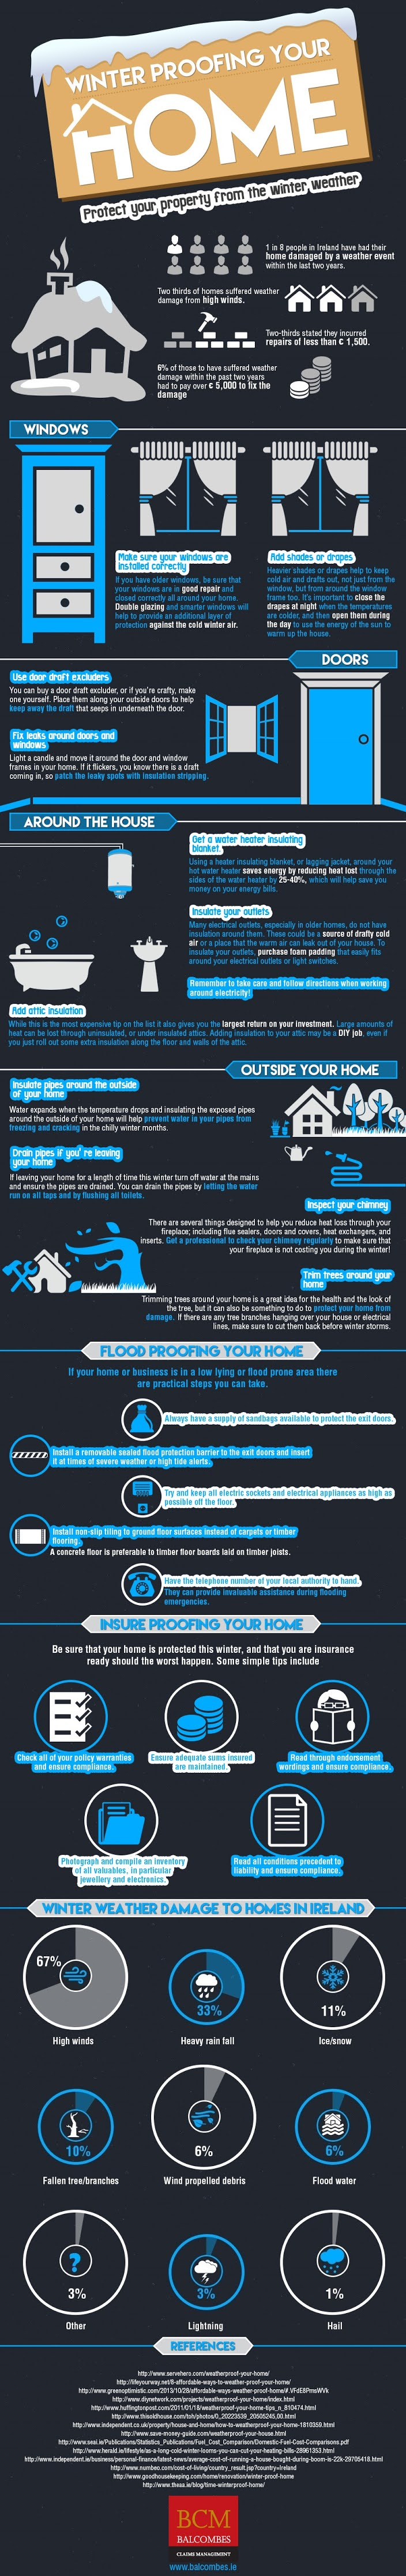 Winter Proofing your Home #infographic